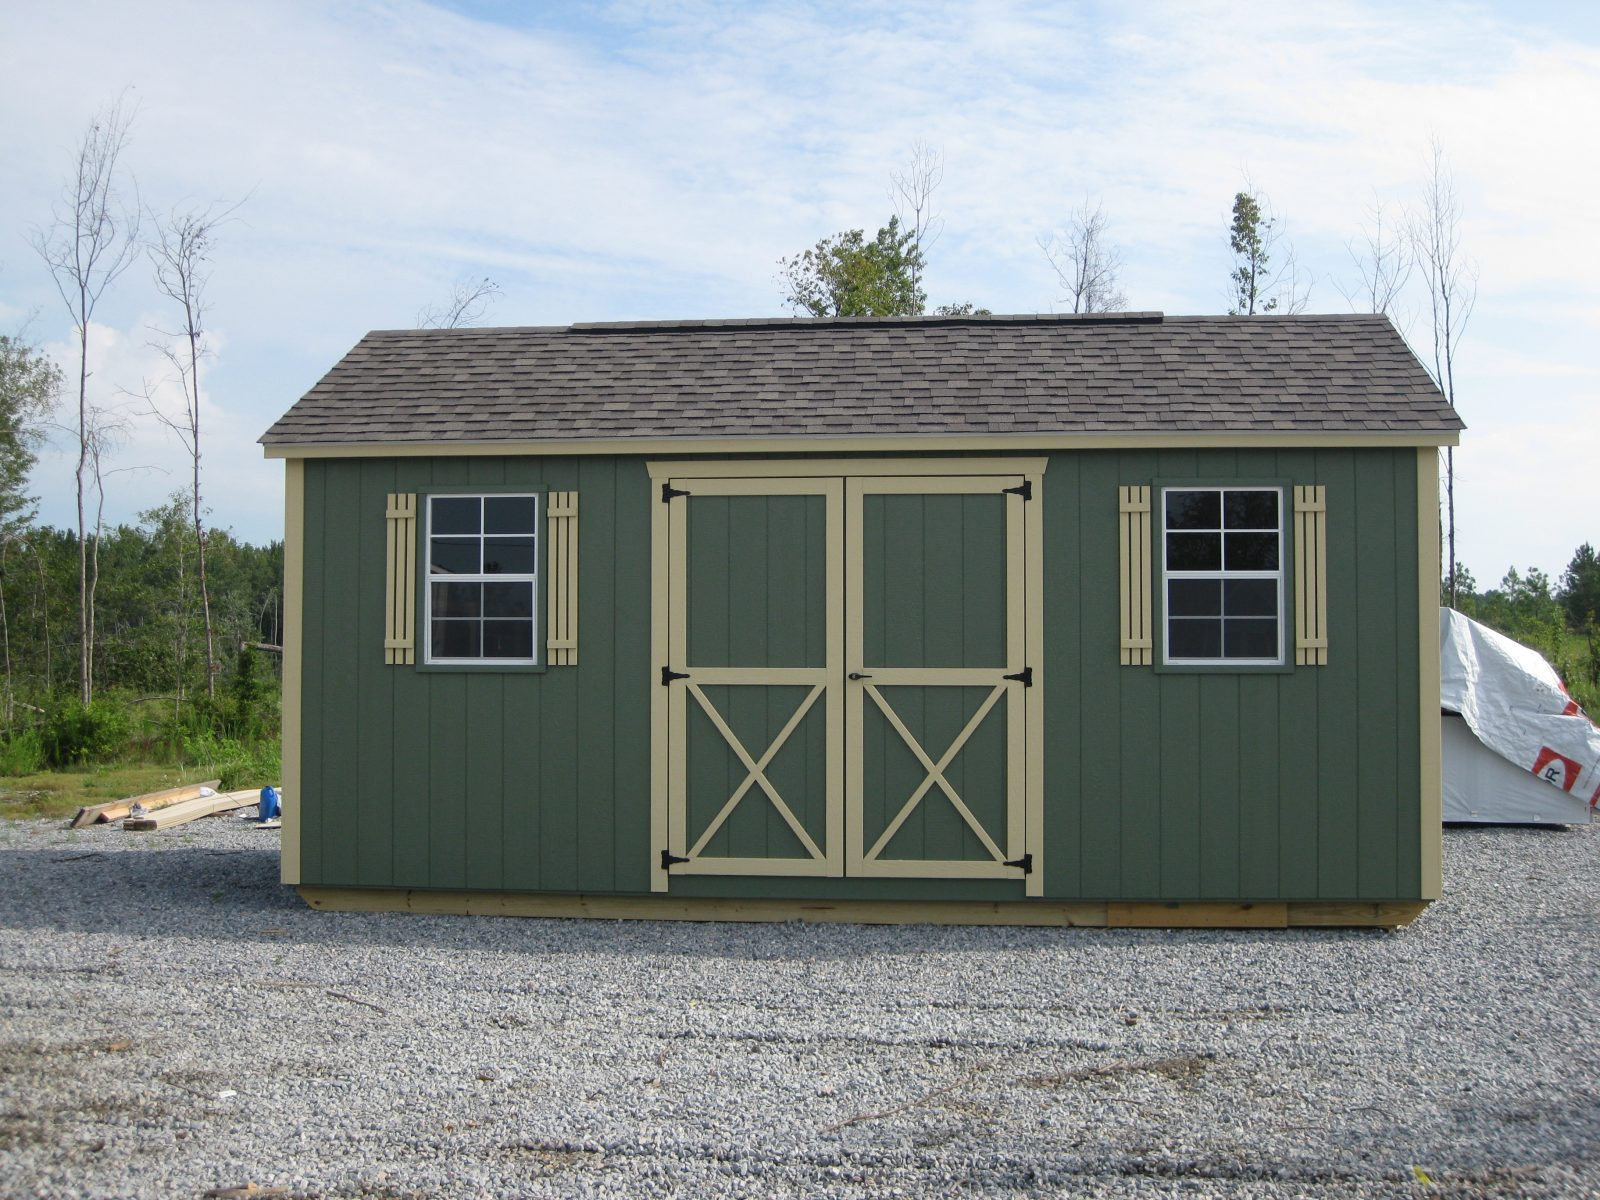 Wooden Garden Sheds For Sale Find Garden Sheds Near Me